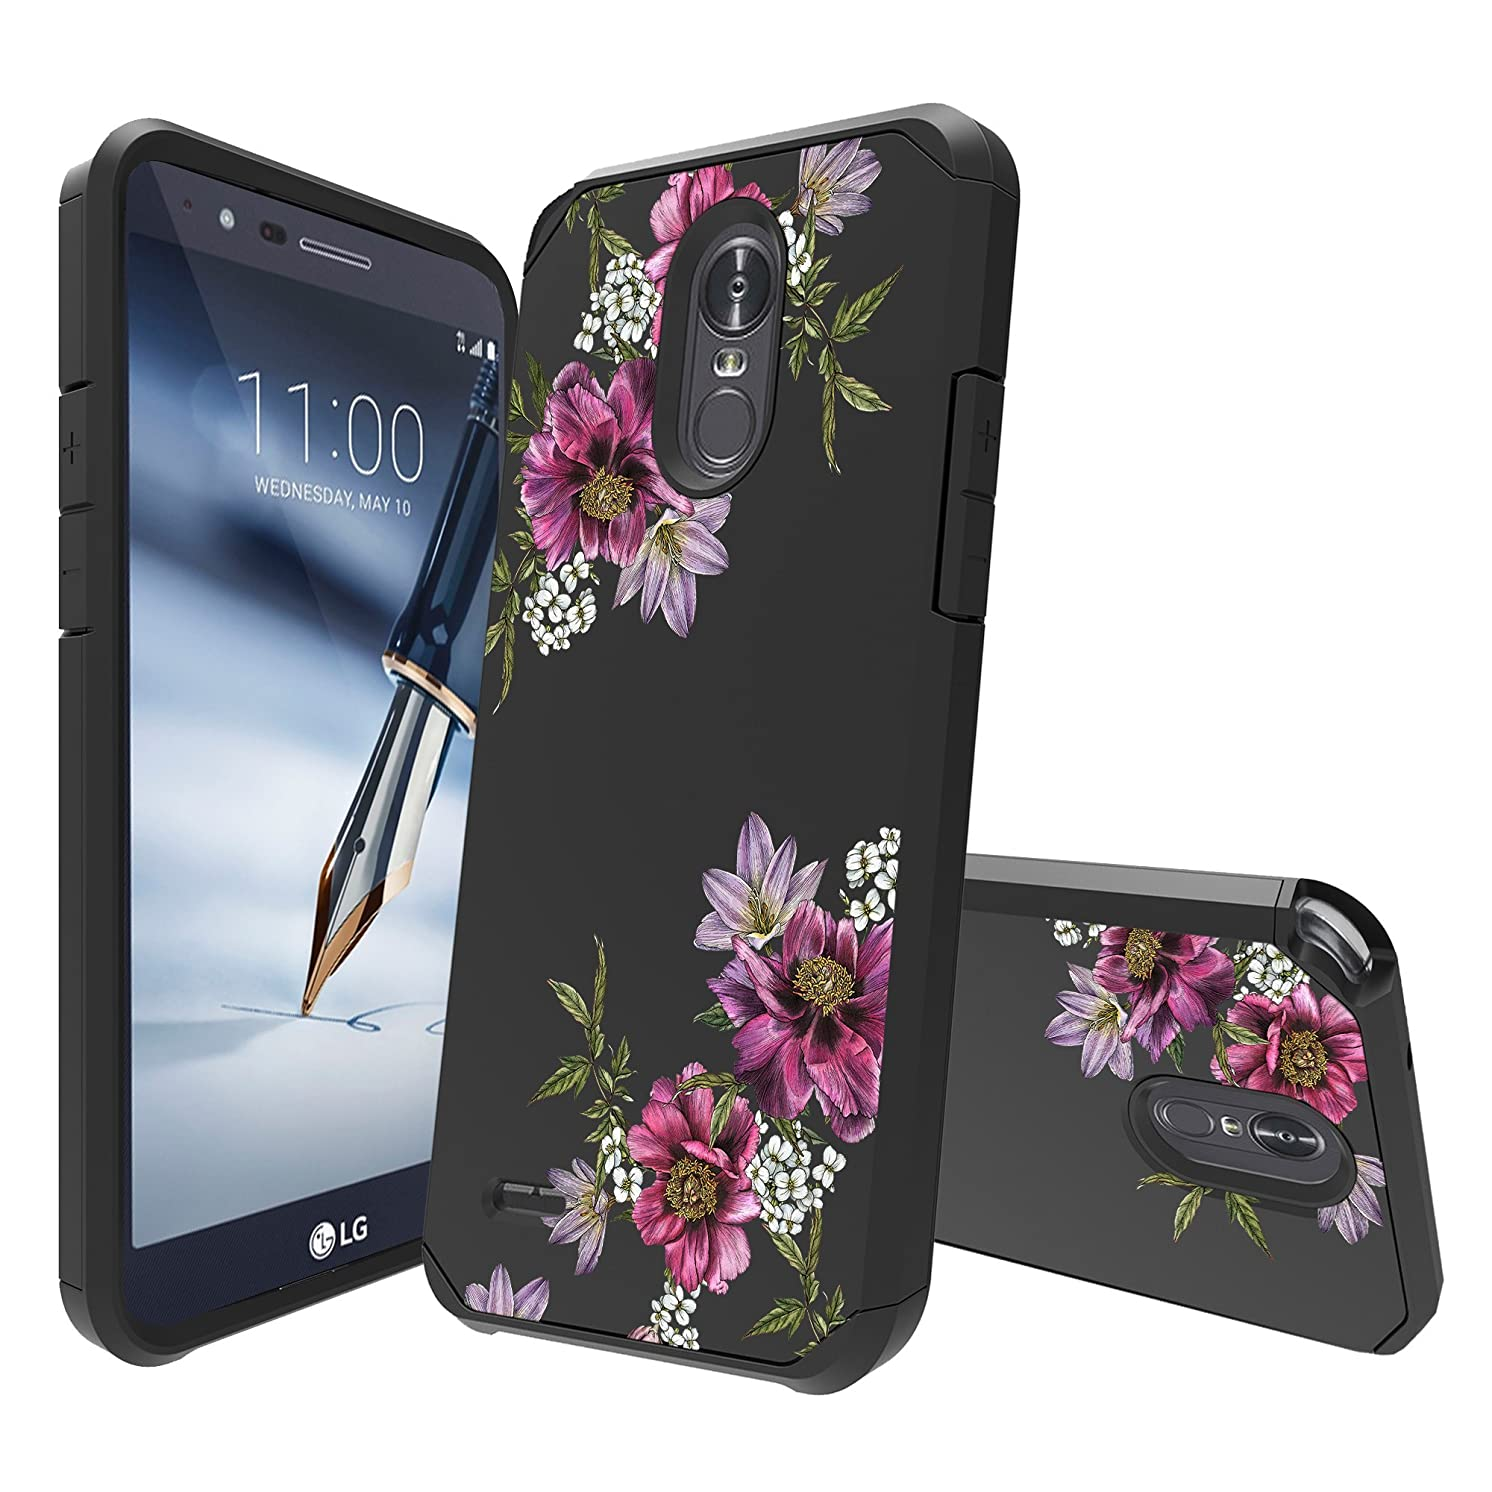 MINITURTLE Case Compatible with LG Stylo 4 / LG Q Stylus [Floral Print Series][Cute Hybrid Case for Girls][Floral Print][2-Part Silicone & Shell Case] - Purple Floral Vine